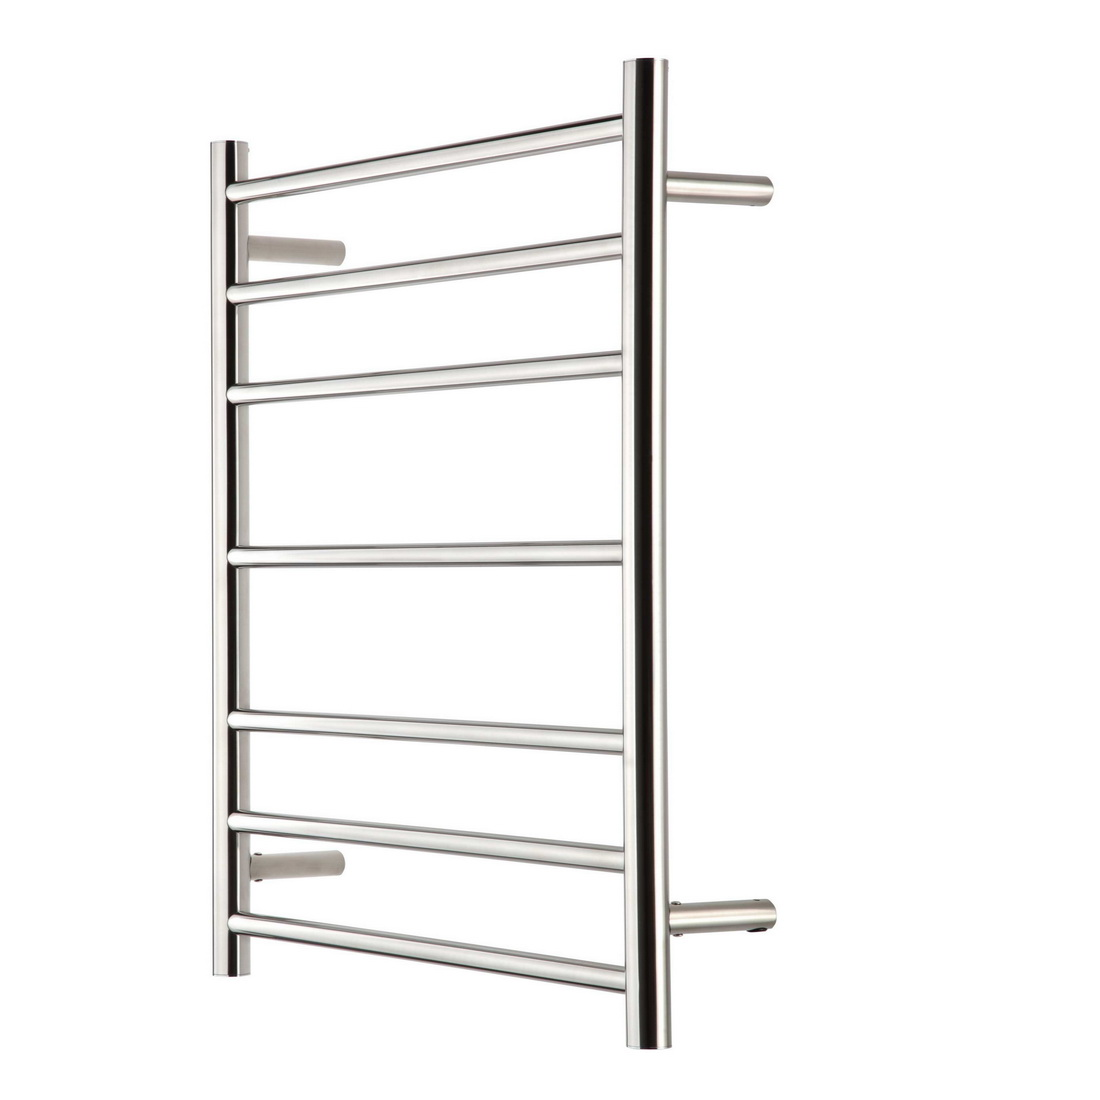 Raymor R Series Round Towel Warmer 600 x 122 x 805 mm 7 Rail Stainless Steel High Polish WHRC805